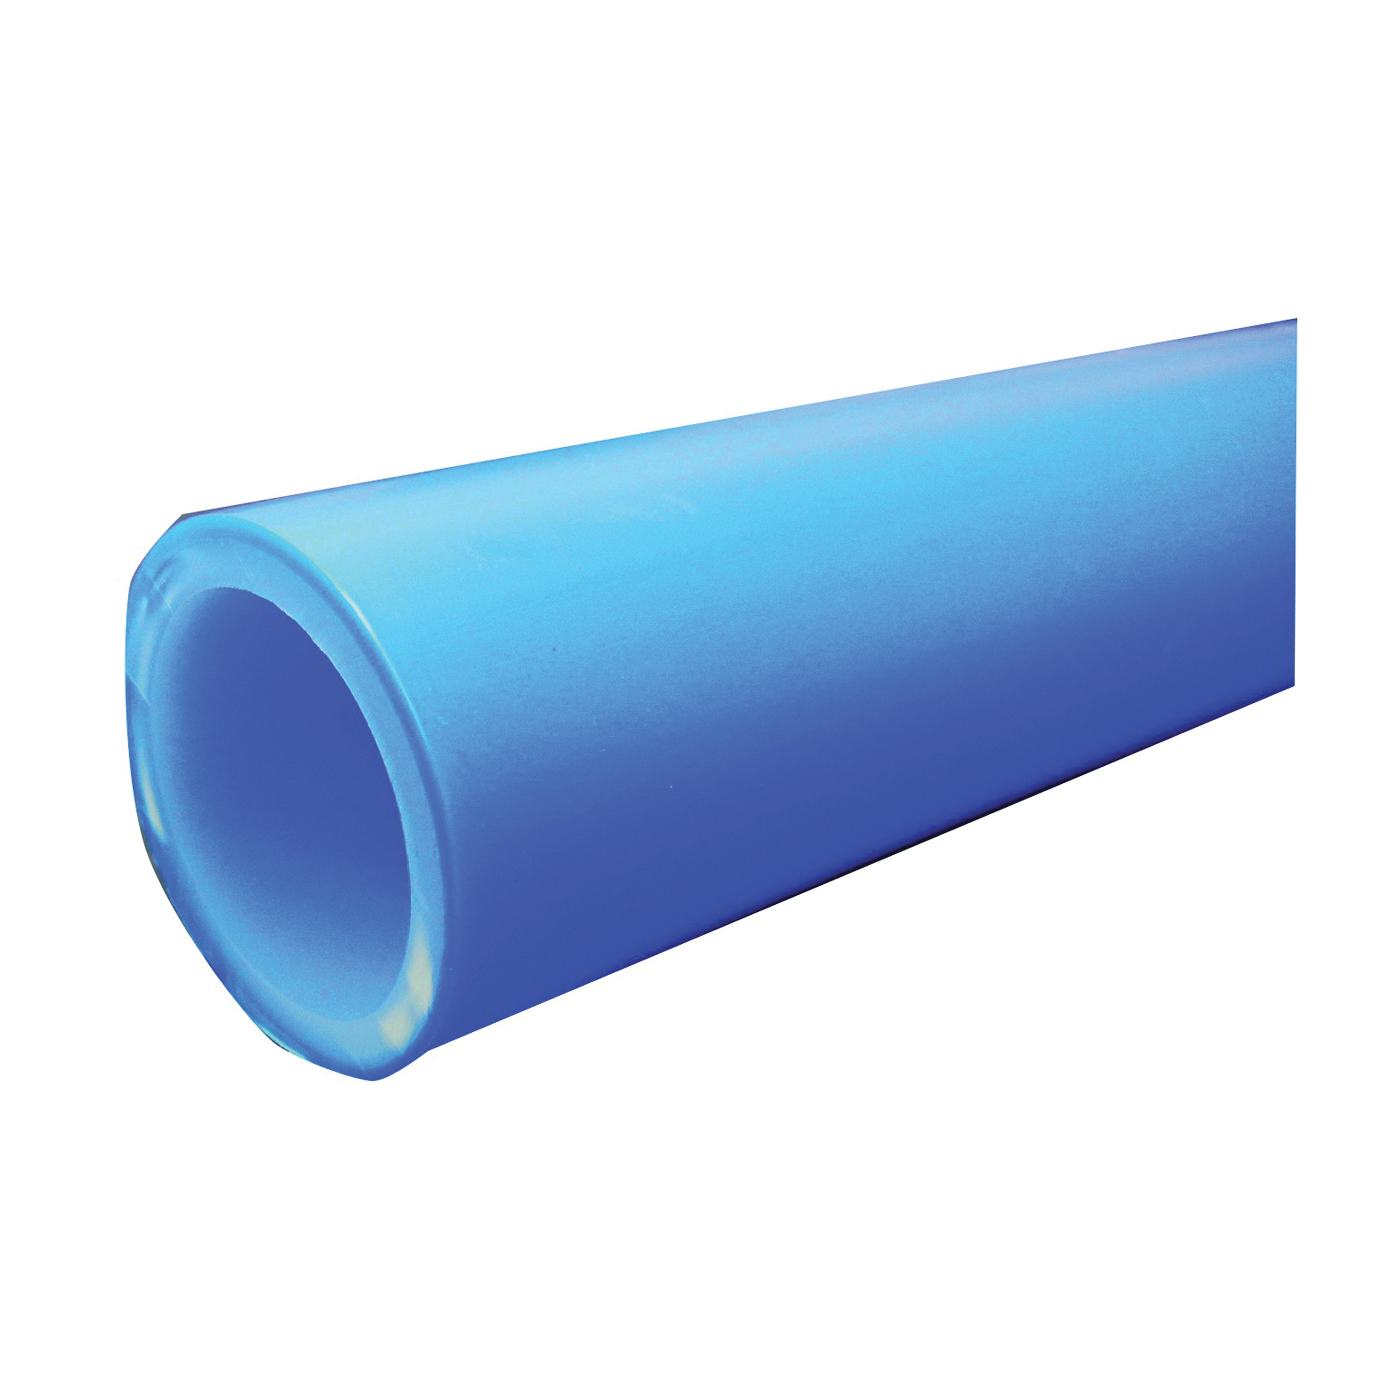 Picture of CRESLINE 19715 Pipe, 3/4 in, Plastic, Blue, 100 ft L